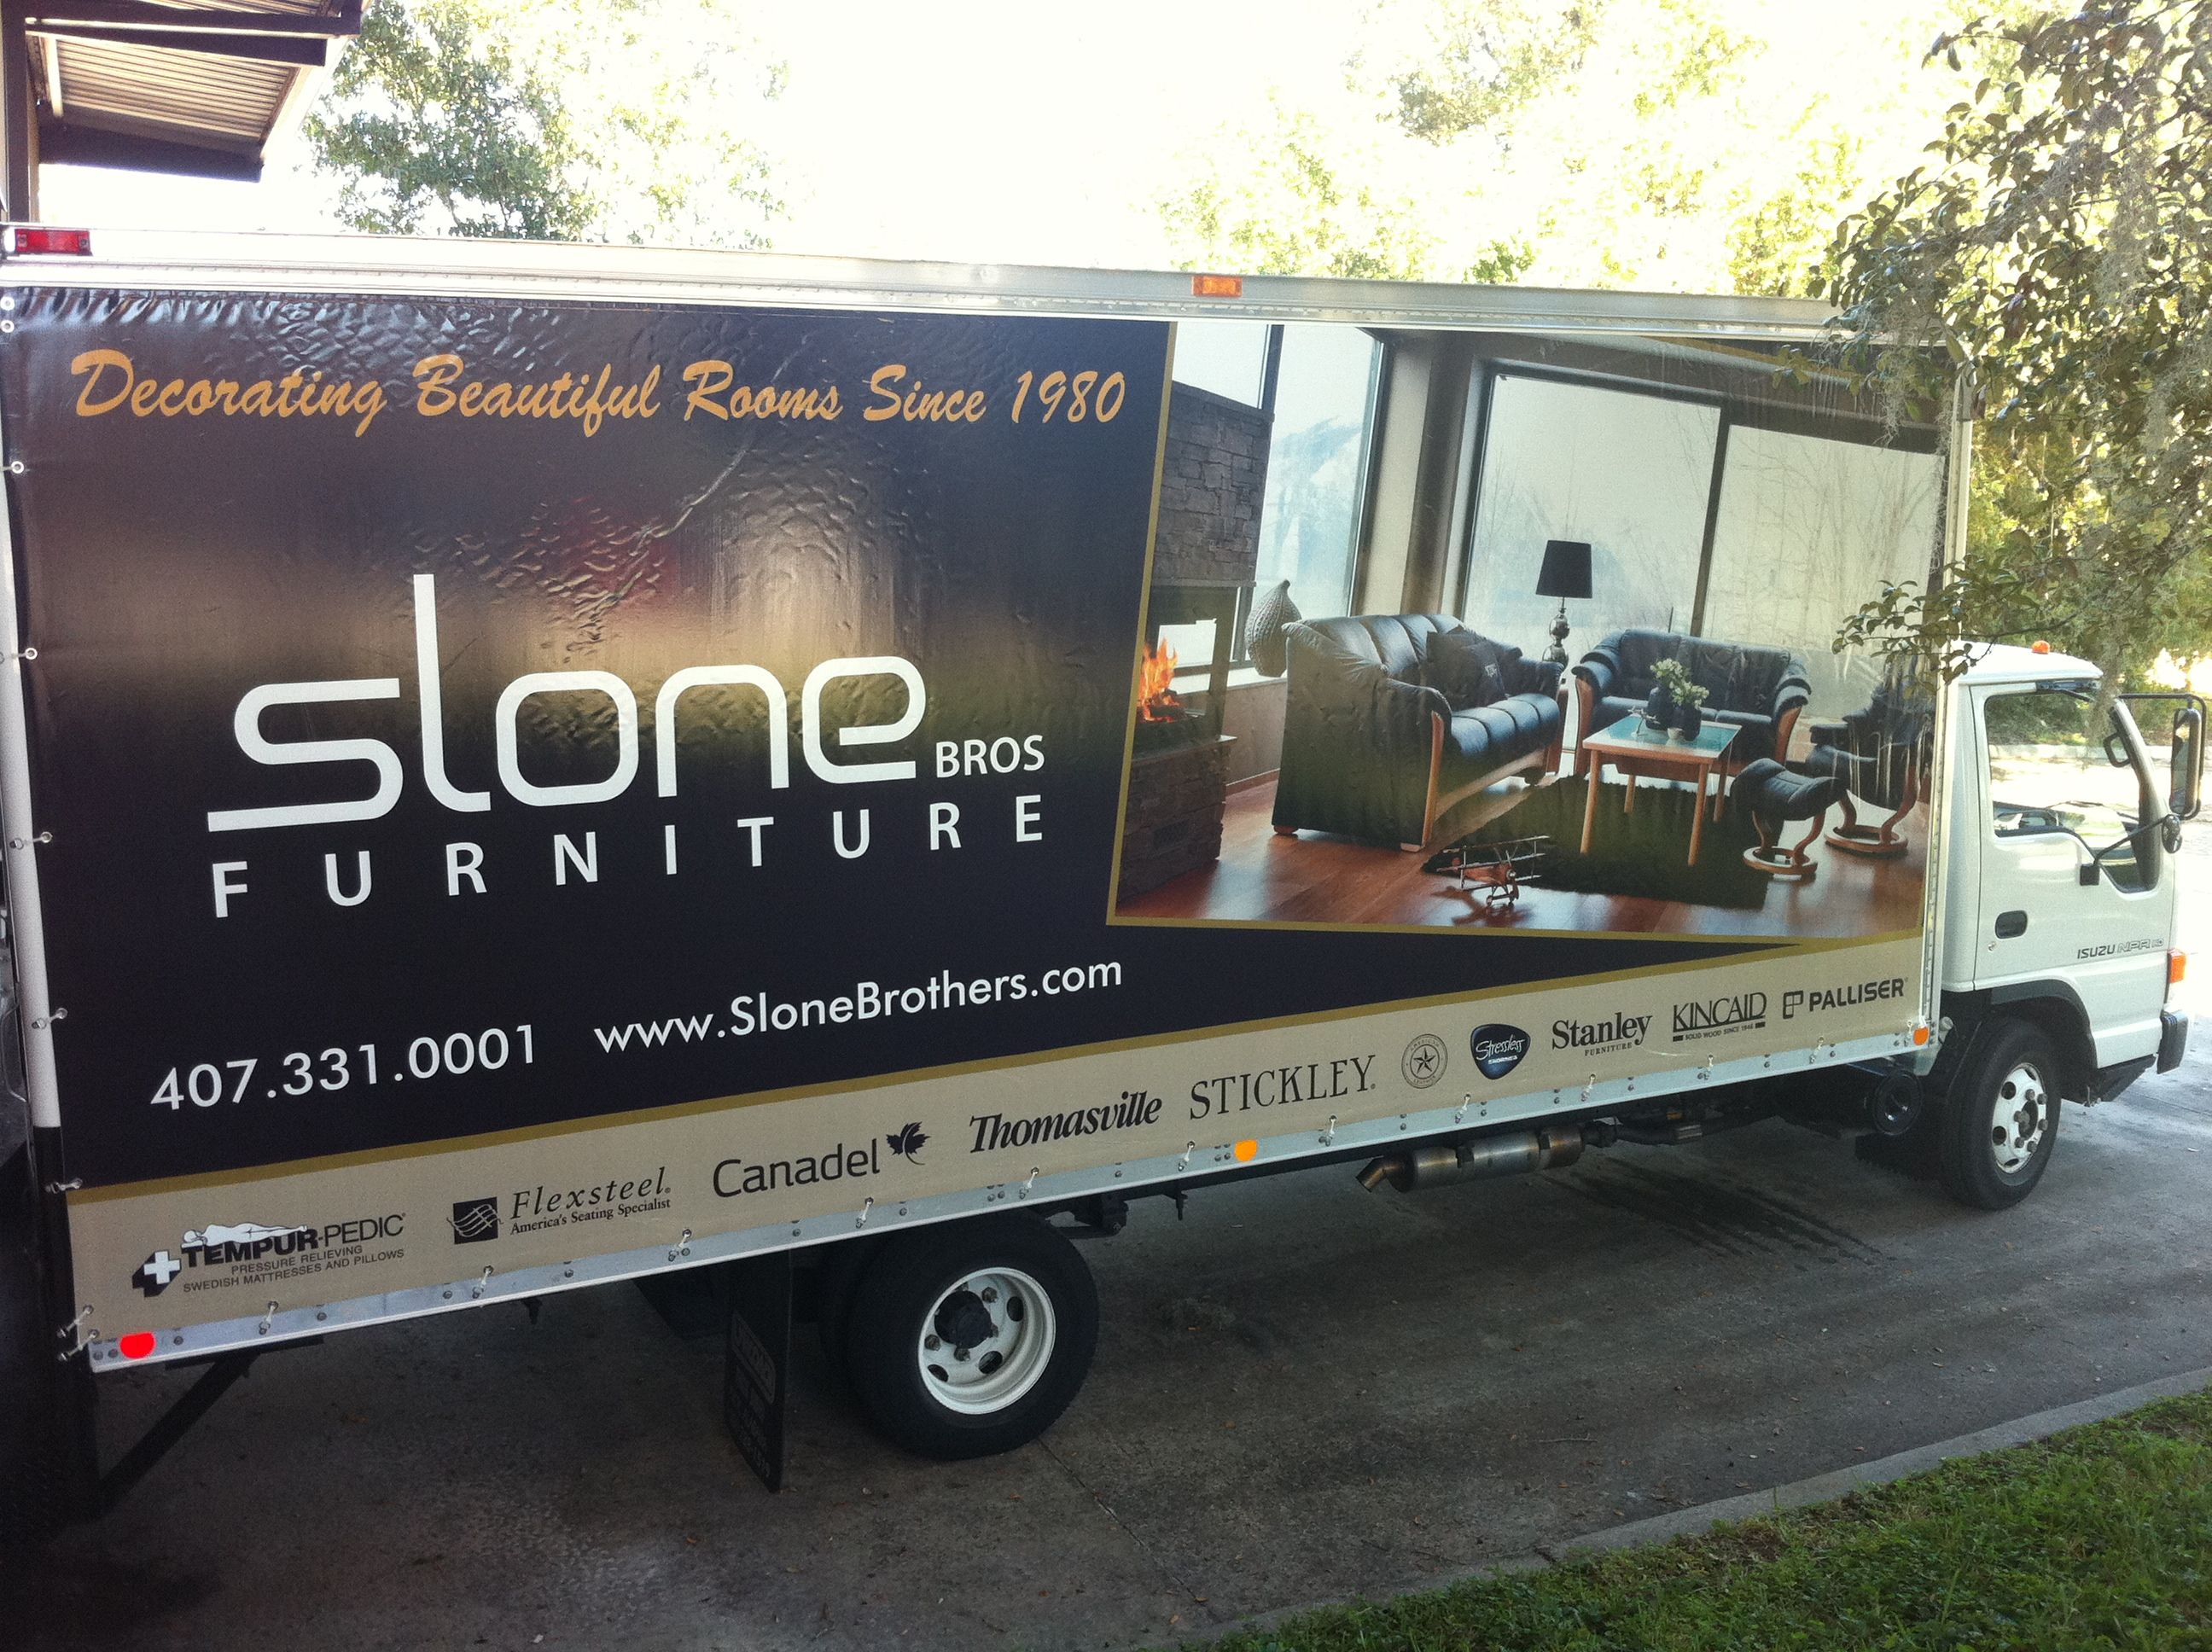 10 Best Meet The Slone Brothers Images On Pinterest | Meet, Brother And  Furniture